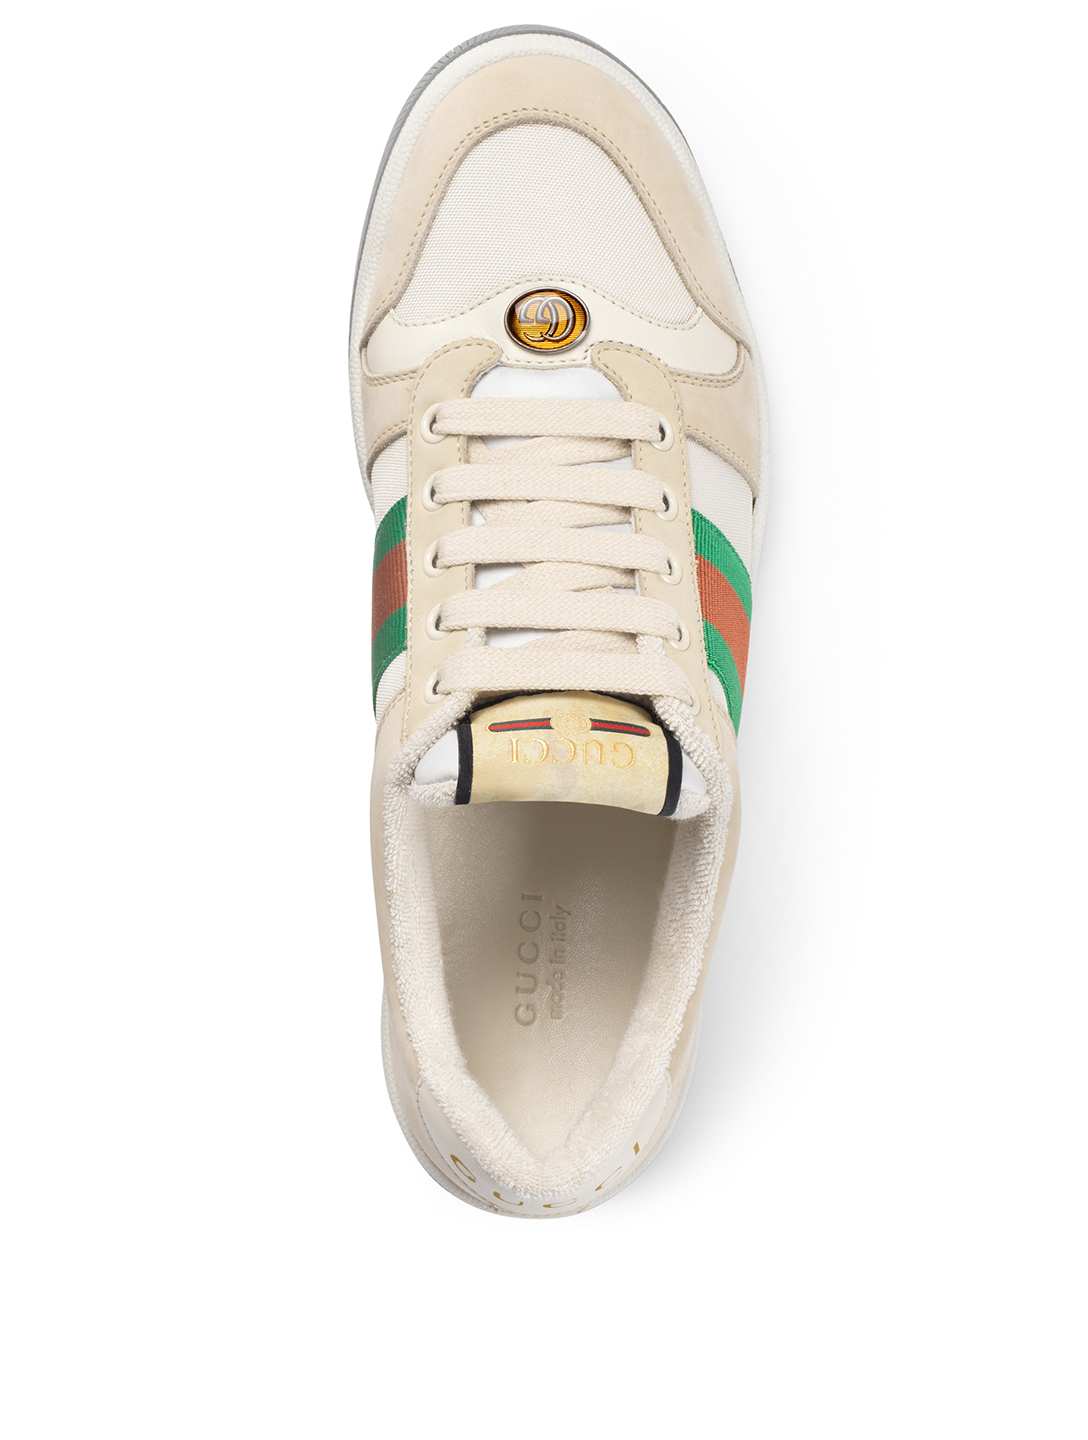 GUCCI Sneakers Screener en nylon et en cuir Femmes Blanc